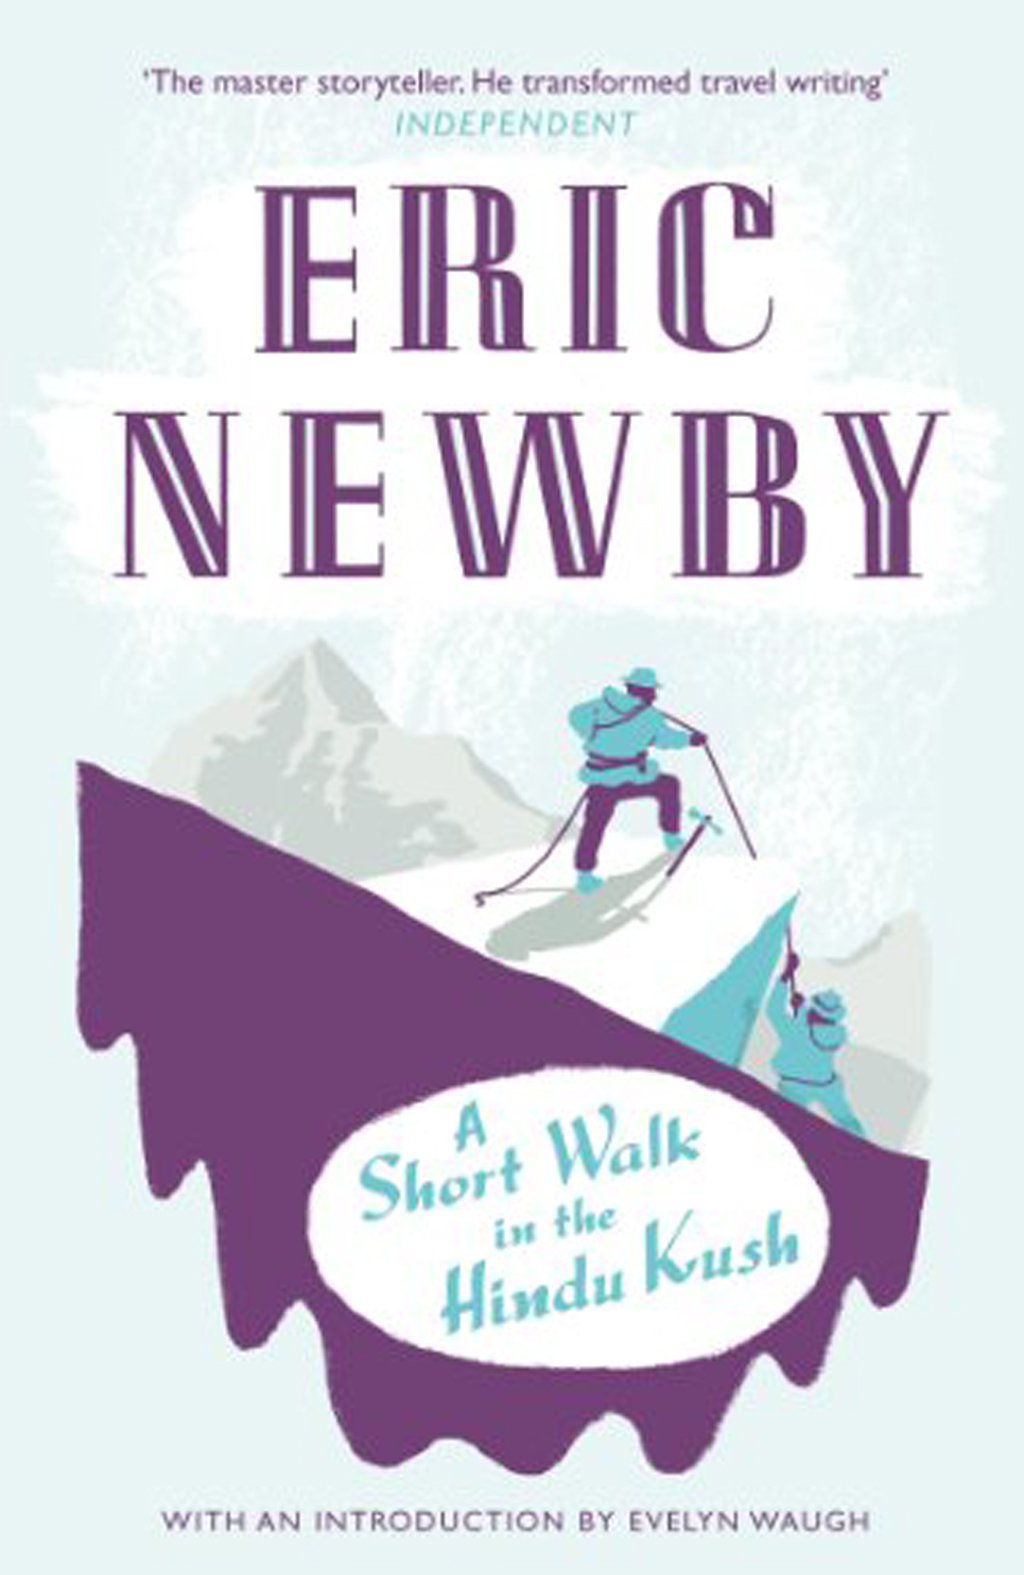 Newby's journey across the Hindu Kush will get you packing for your next adventure in the hills